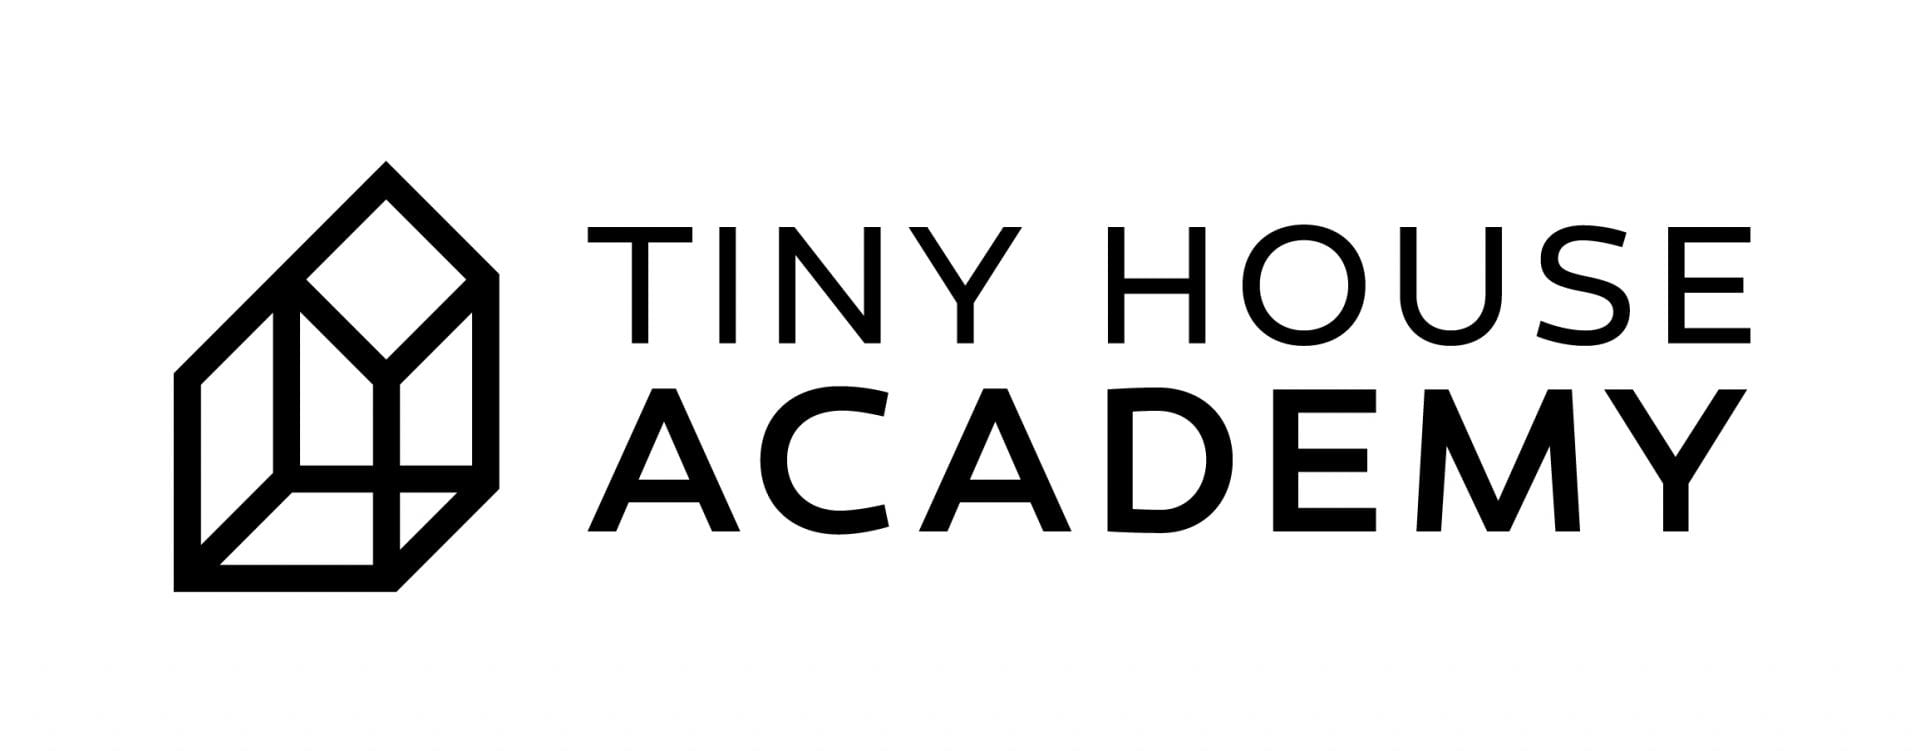 Tiny House Academy